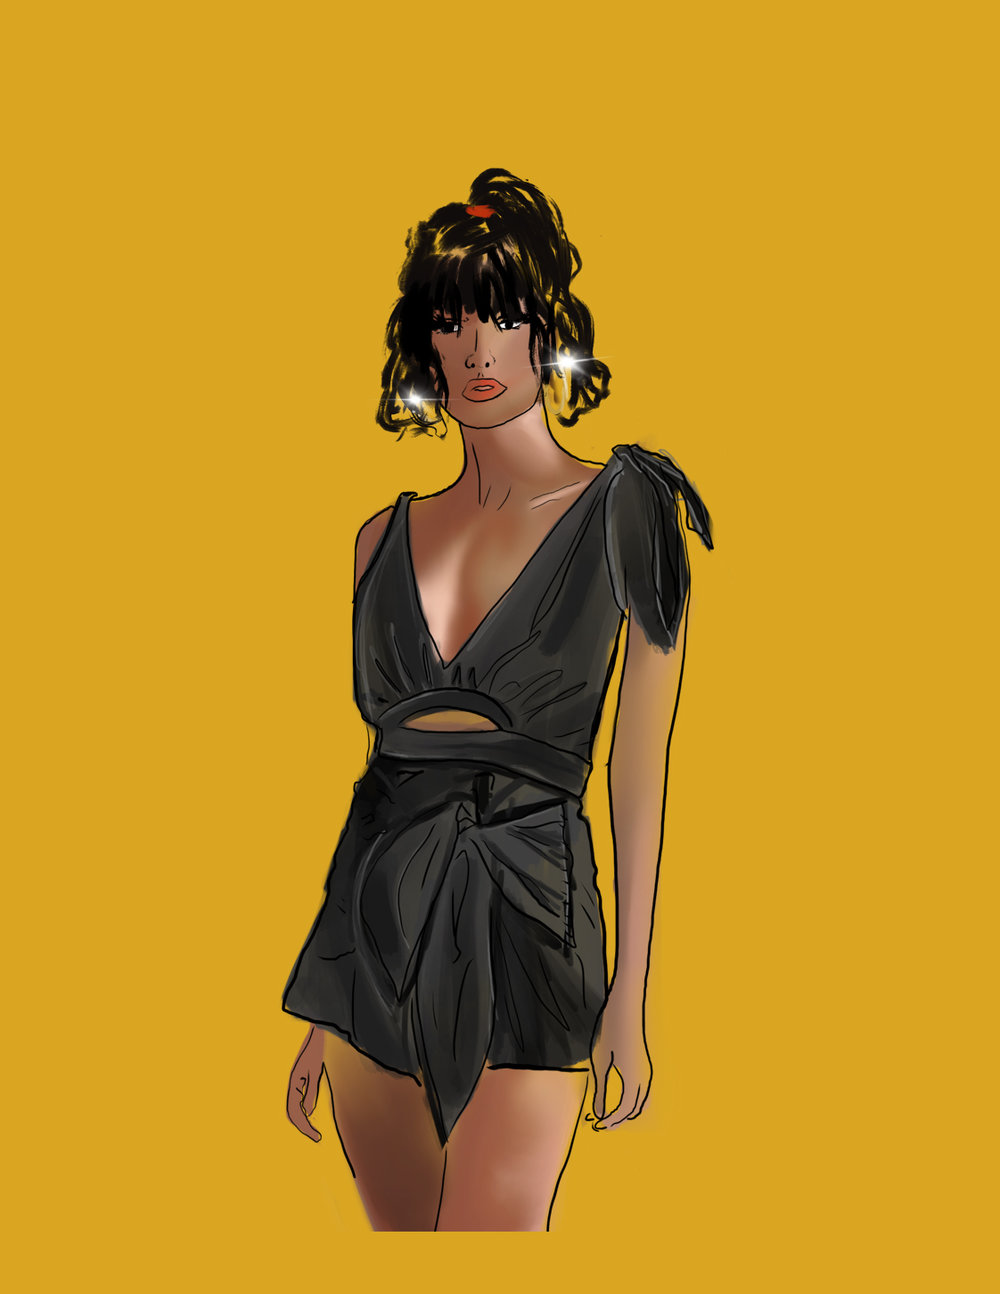 playsuit editorial.jpg